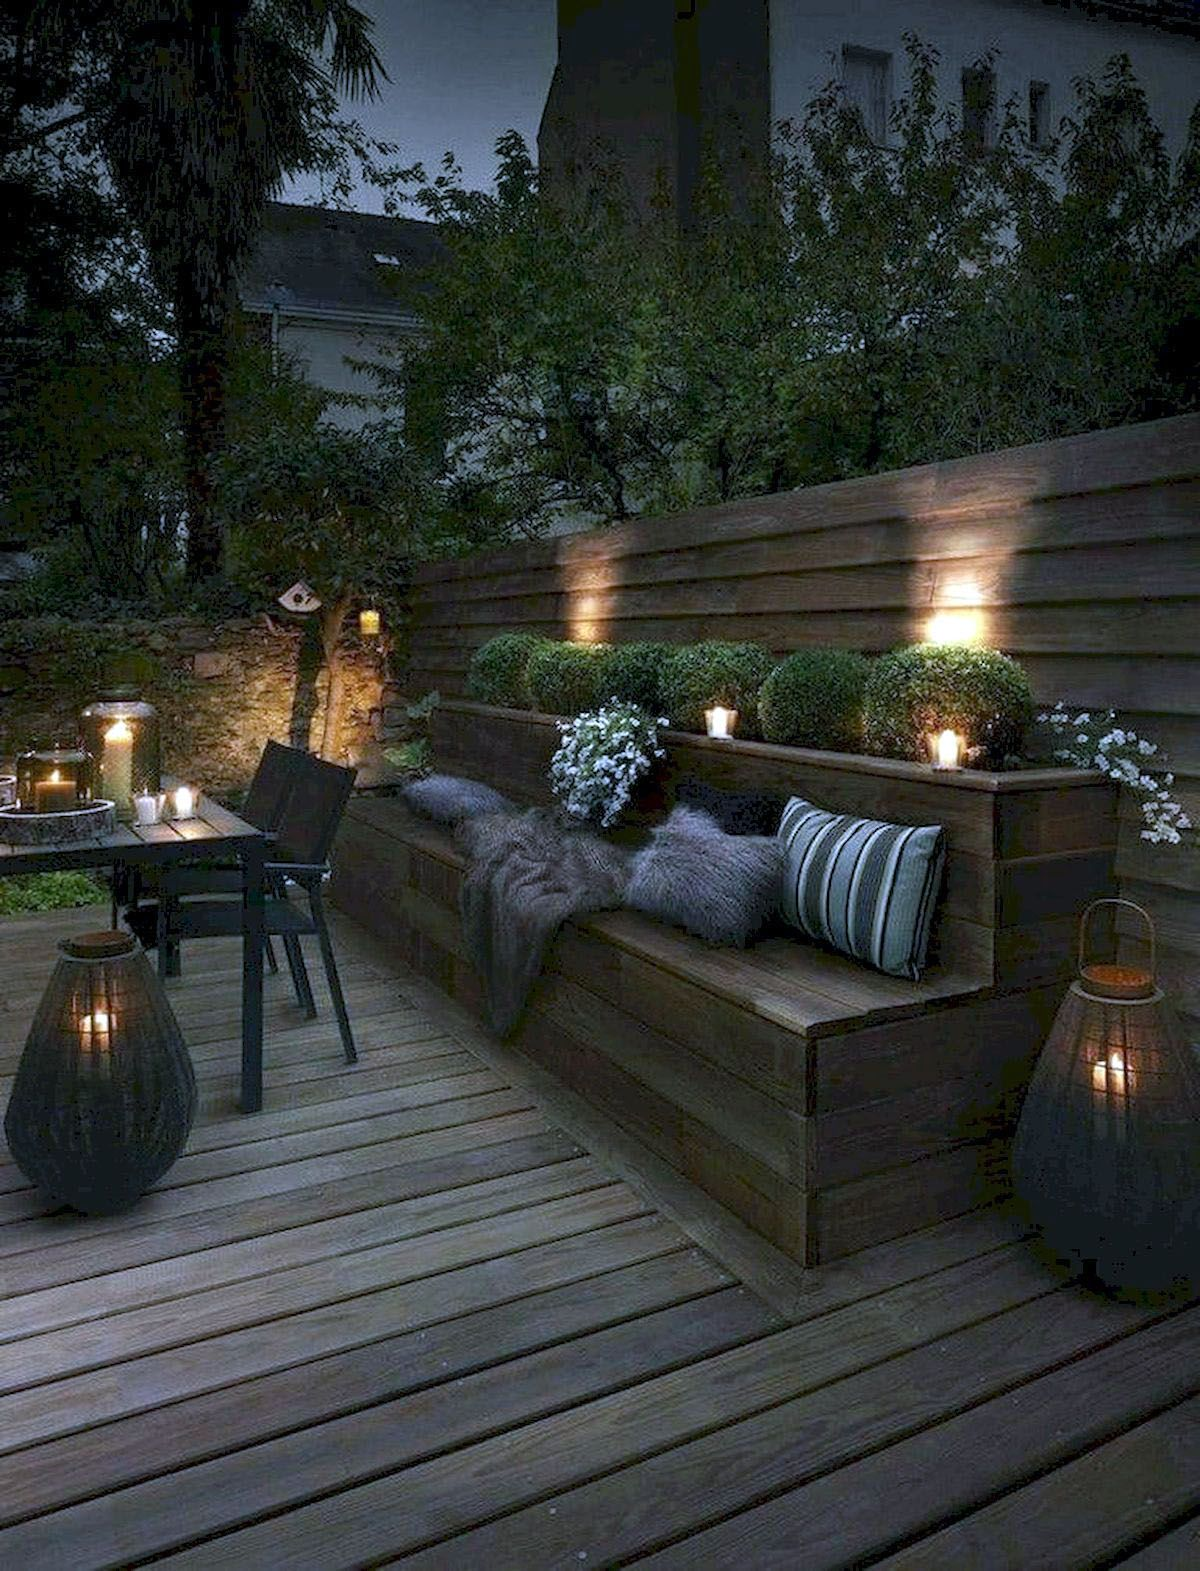 Terrific Exterior House Lighting Ideas Uk One And Only Kennyslandscaping Com Backyard Seating Area Backyard Seating Backyard Patio